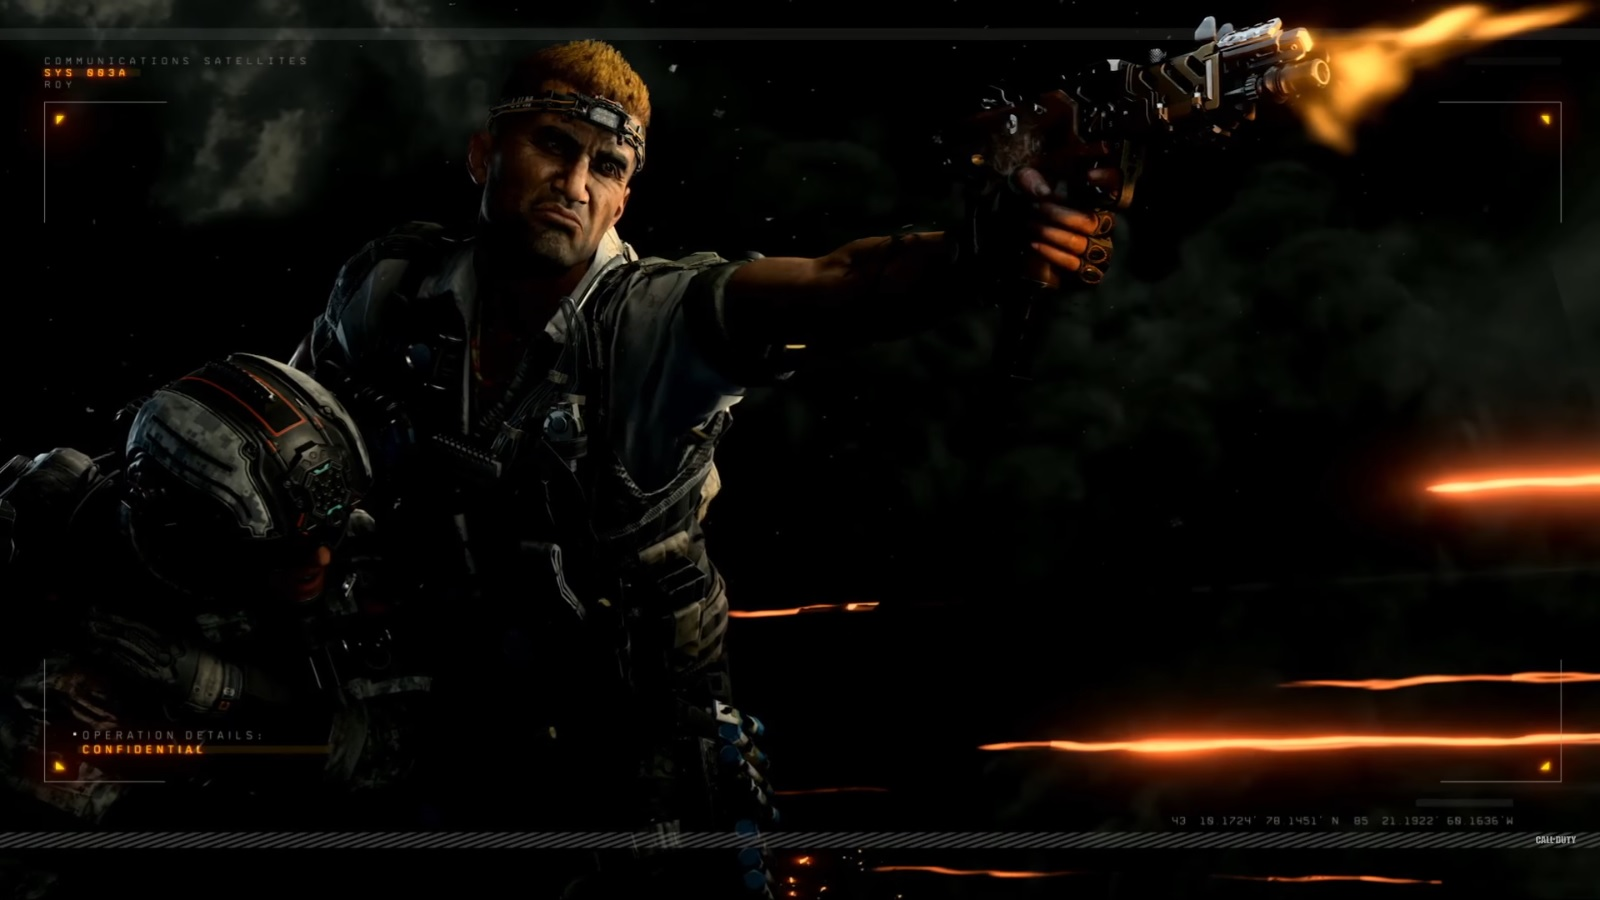 Call Of Duty Black Ops 4 UHD Wallpaper